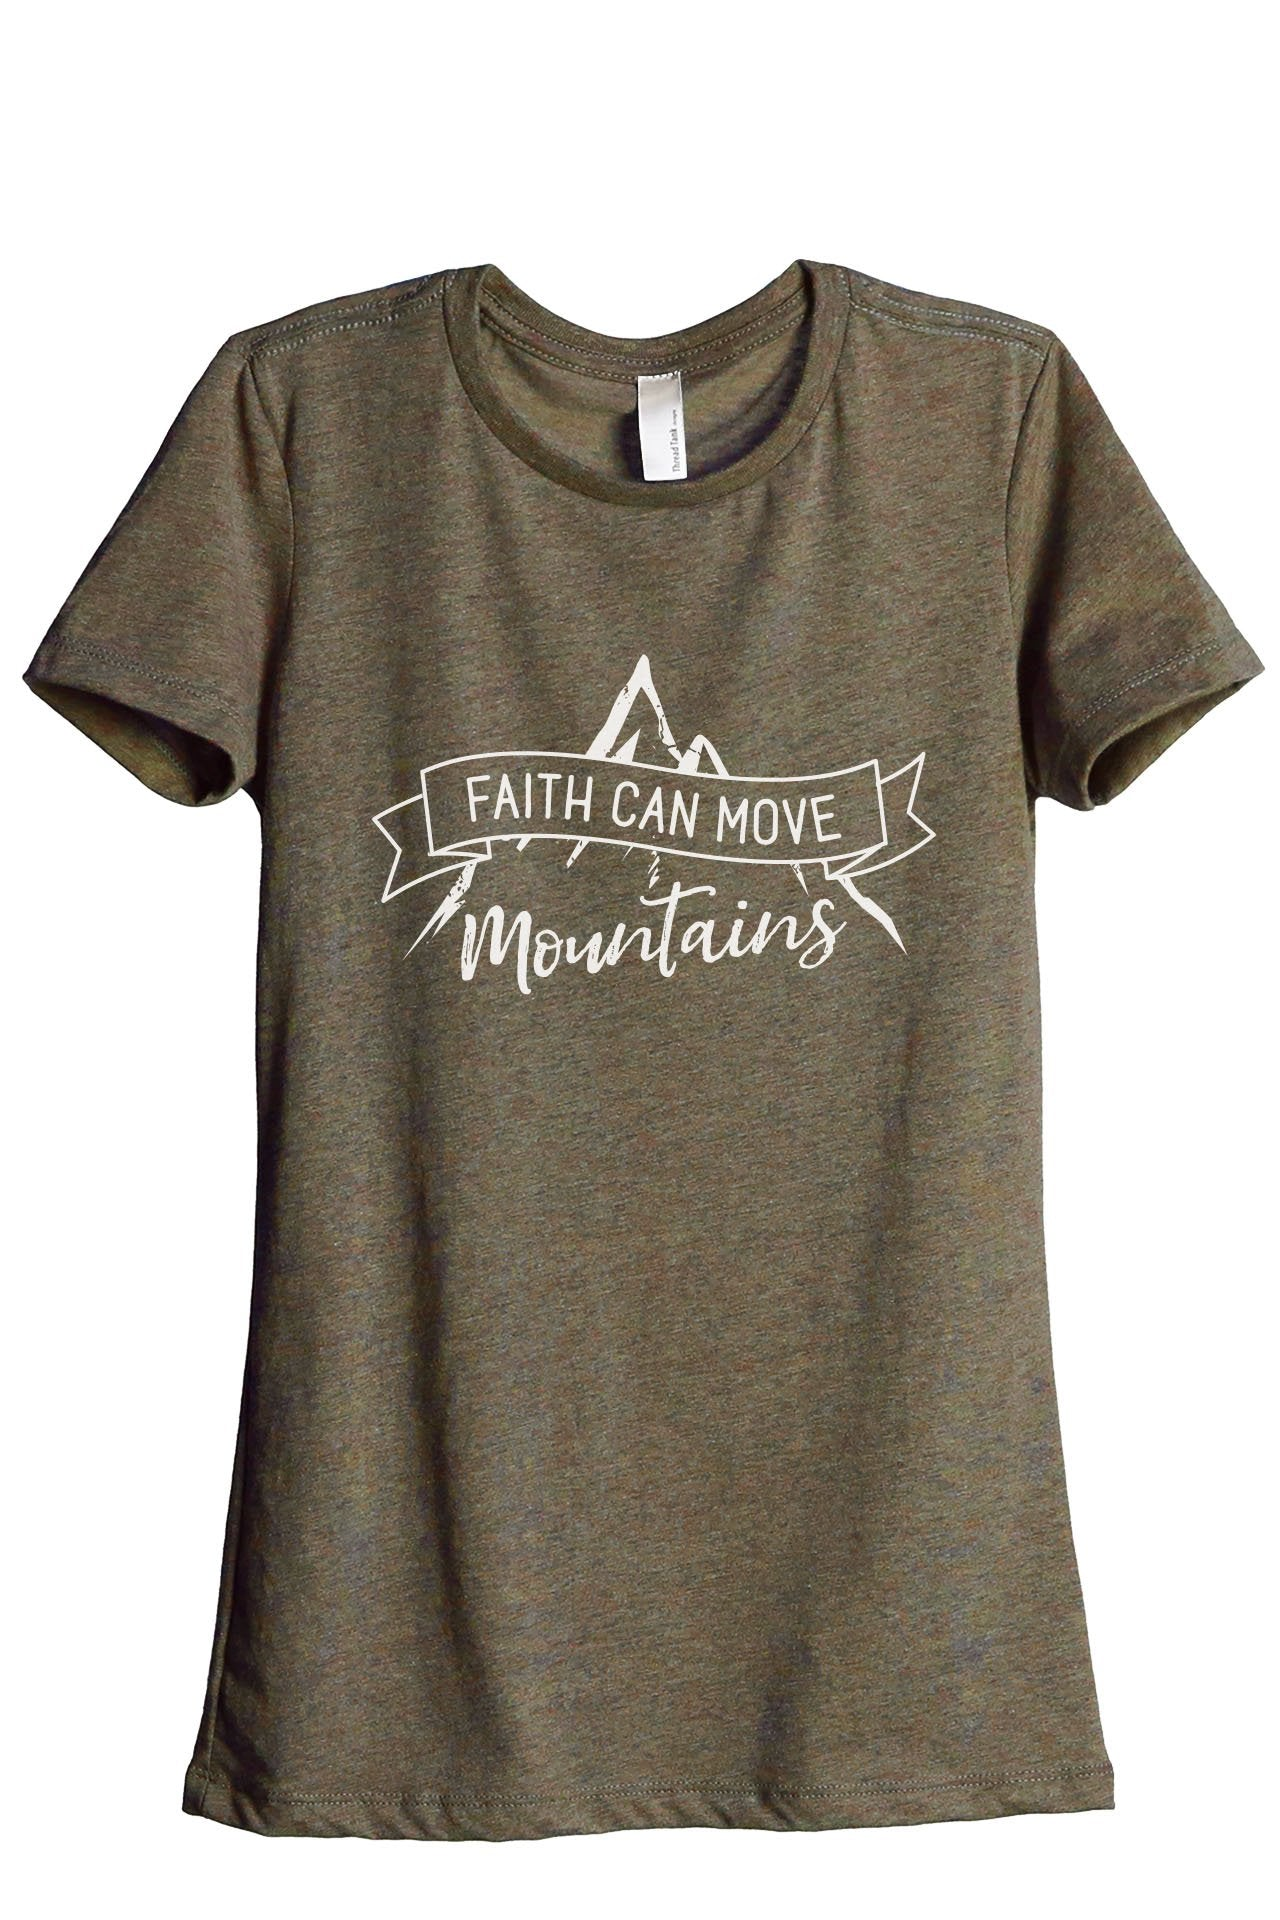 Faith Can Move Mountains - Thread Tank | Stories You Can Wear | T-Shirts, Tank Tops and Sweatshirts